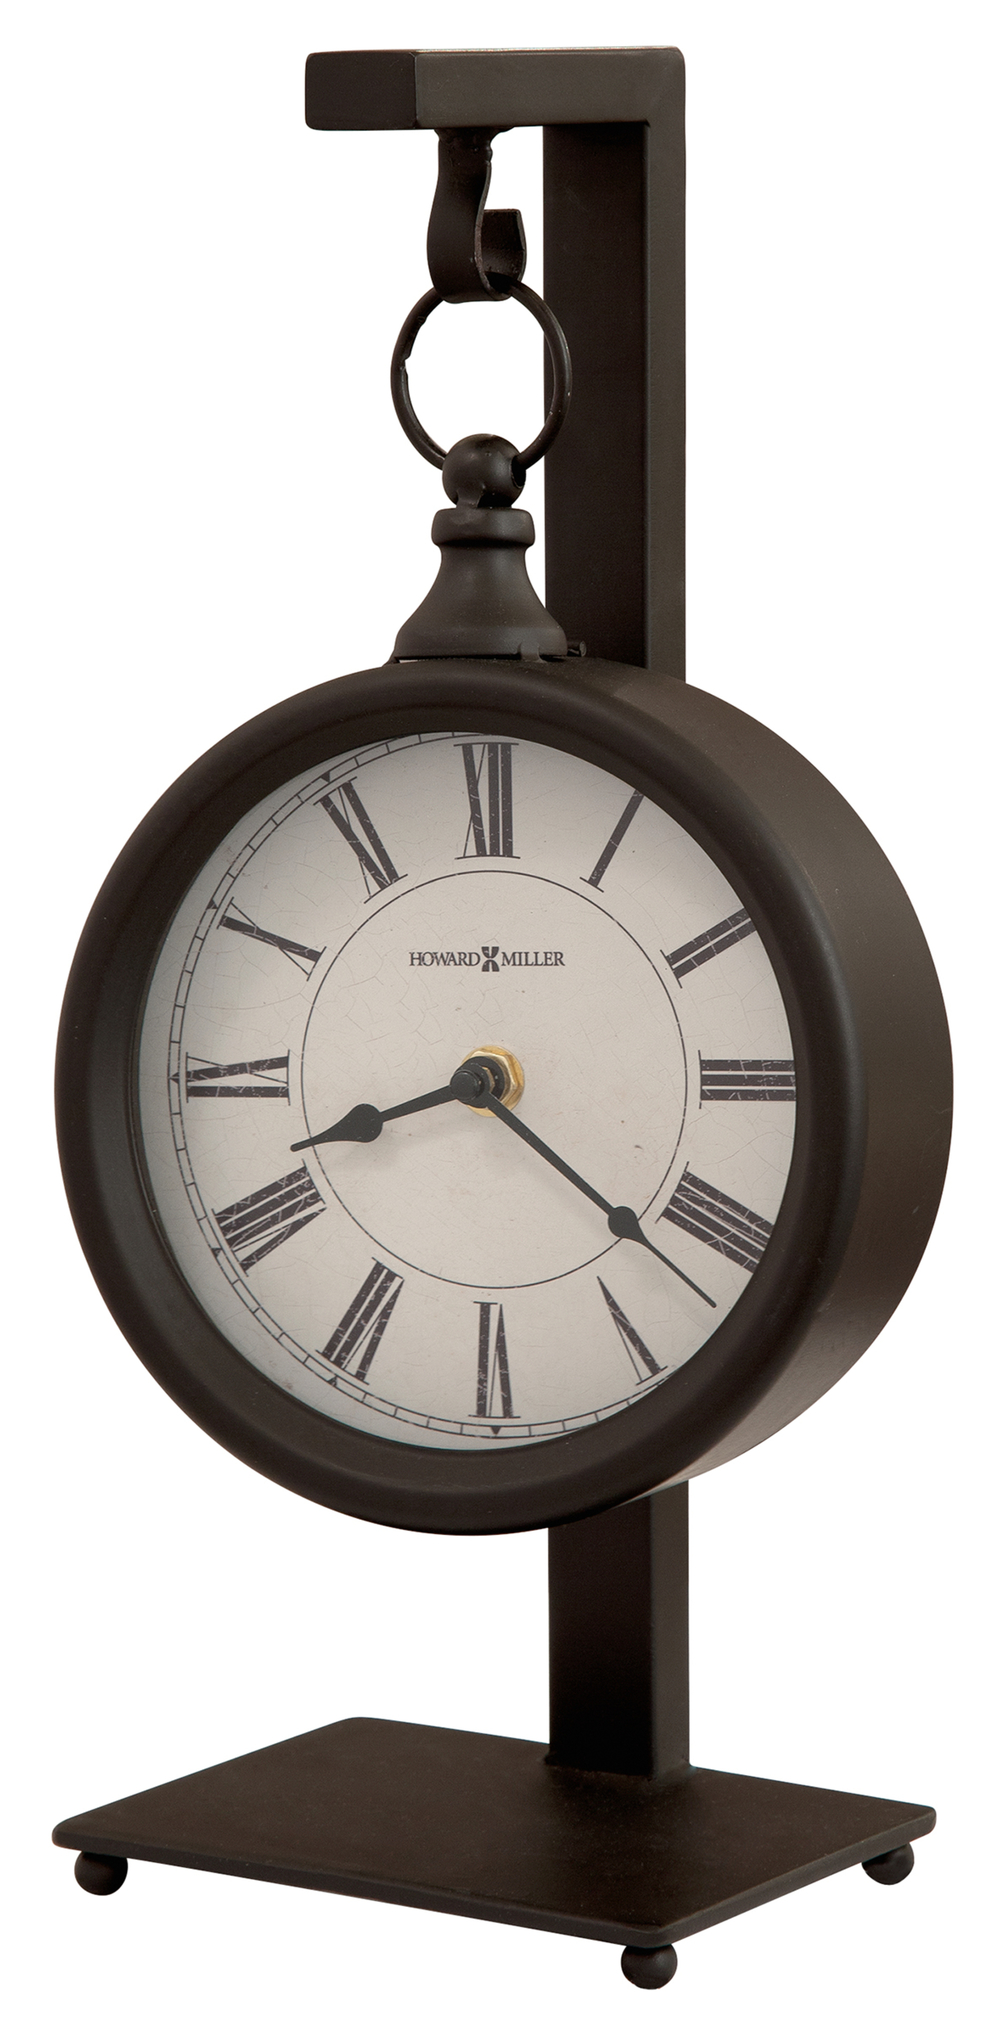 Howard Miller Clock - Loman Mantel Clock